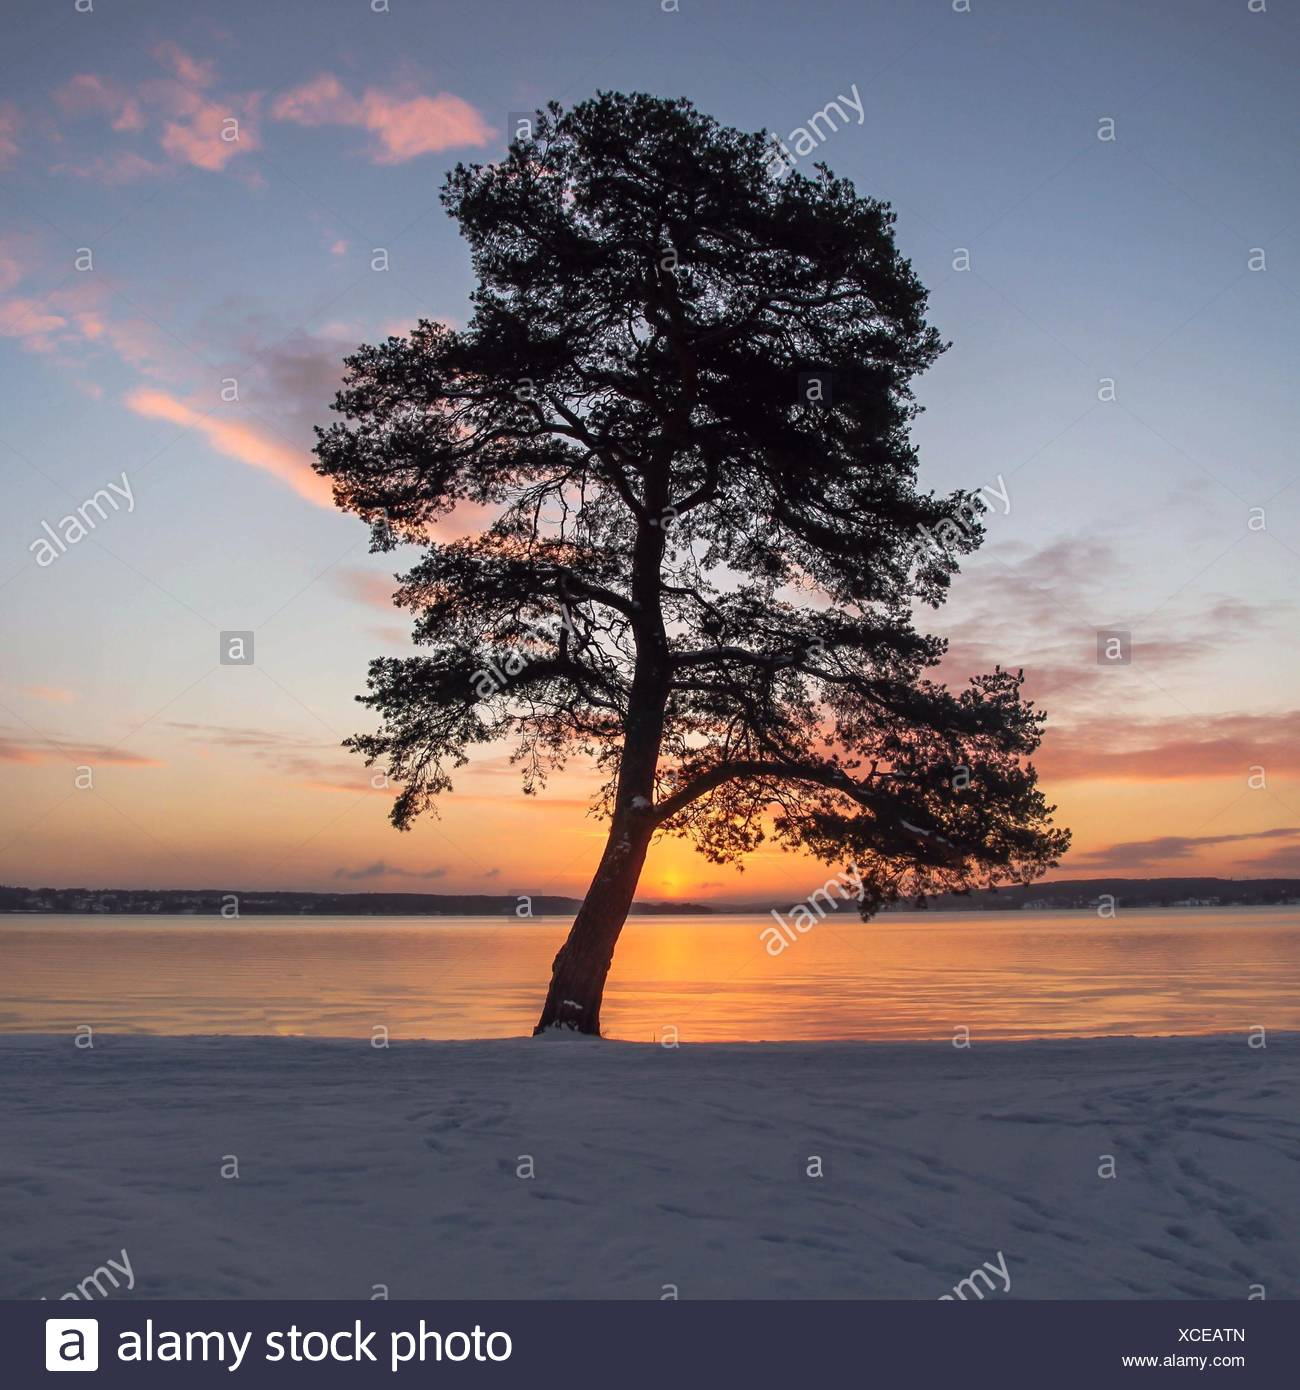 Tree by sea in snow, Sweden - Stock Image